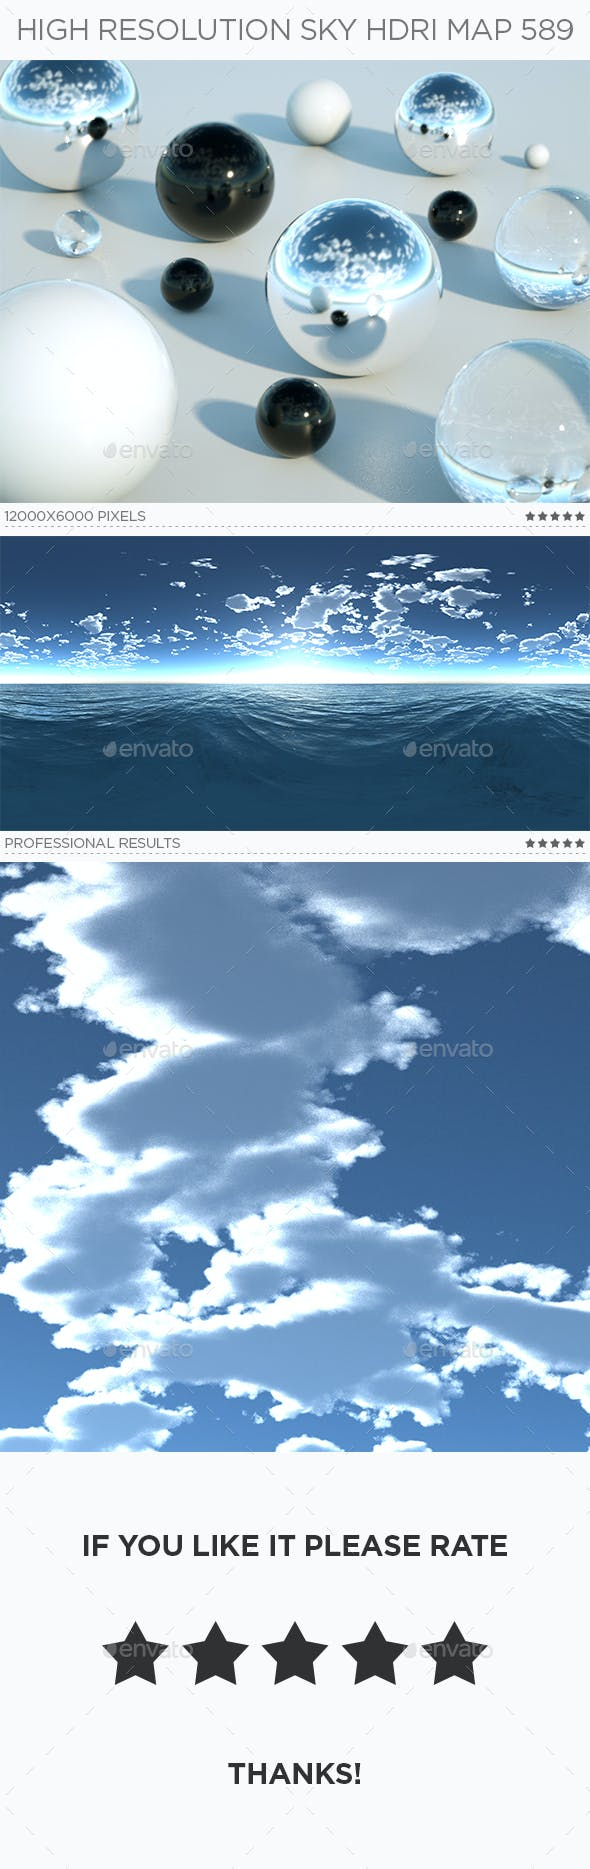 High Resolution Sky HDRi Map 589 - 3DOcean Item for Sale